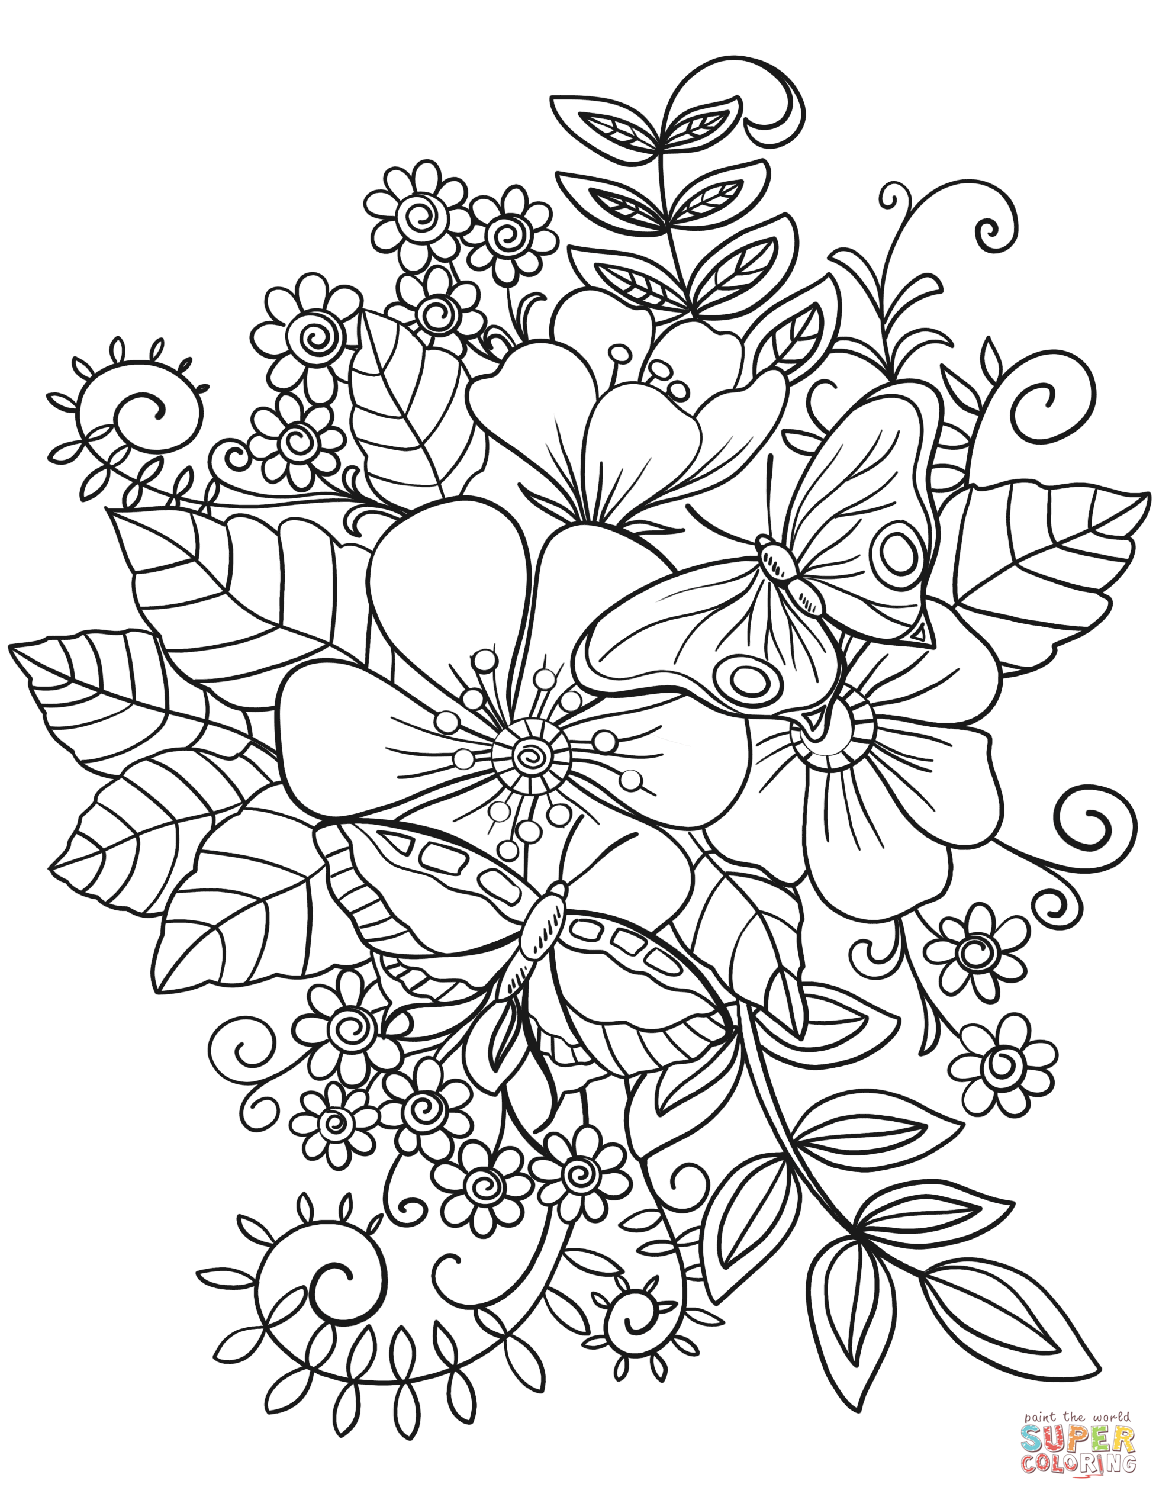 Butterflies On Flowers Coloring Page